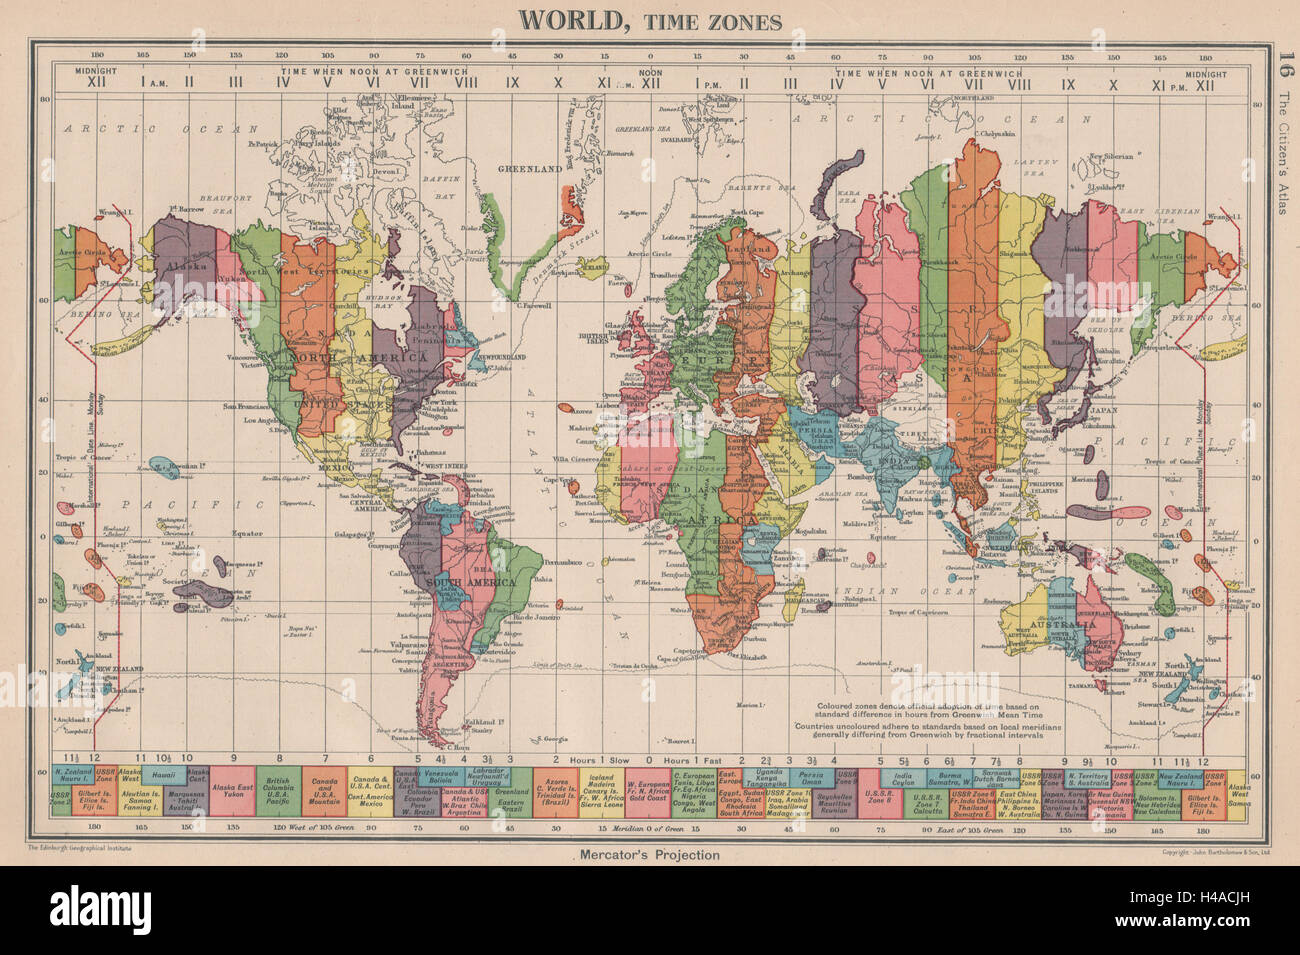 Map Of Uk Time Zones.World Time Zones Uk Ireland Spain France On Same Zone Stock